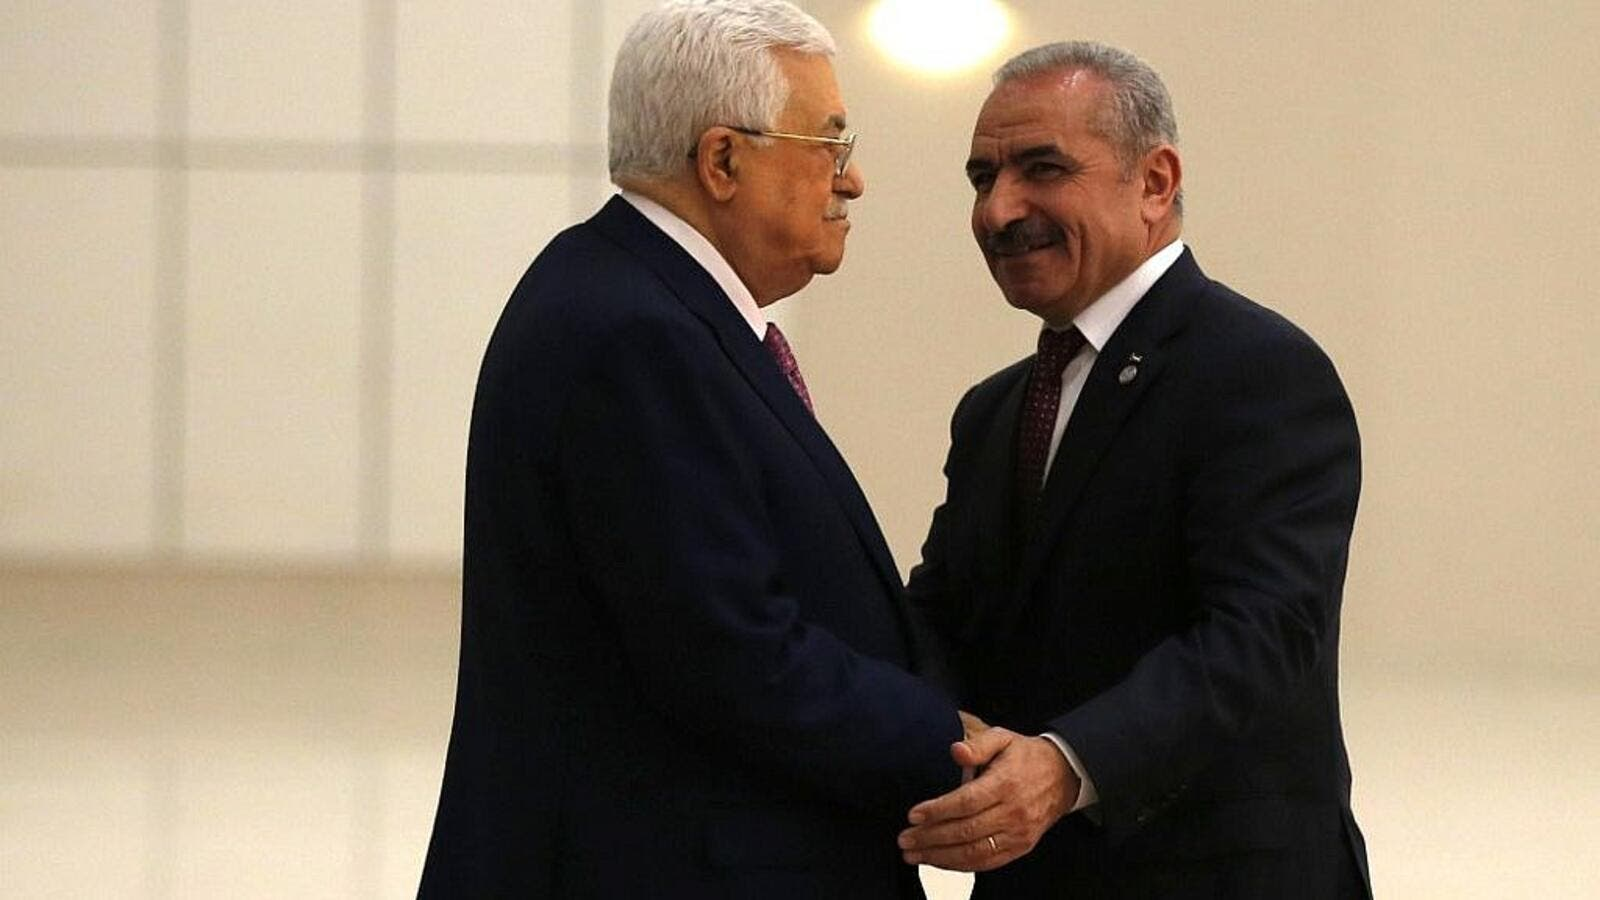 Palestinian Authority President Mahmoud Abbas (L) shakes hands with the prime minister Mohammad Shtayyeh in the West Bank city of Ramallah, on April 13, 2019. (Abbas Momani/AFP)